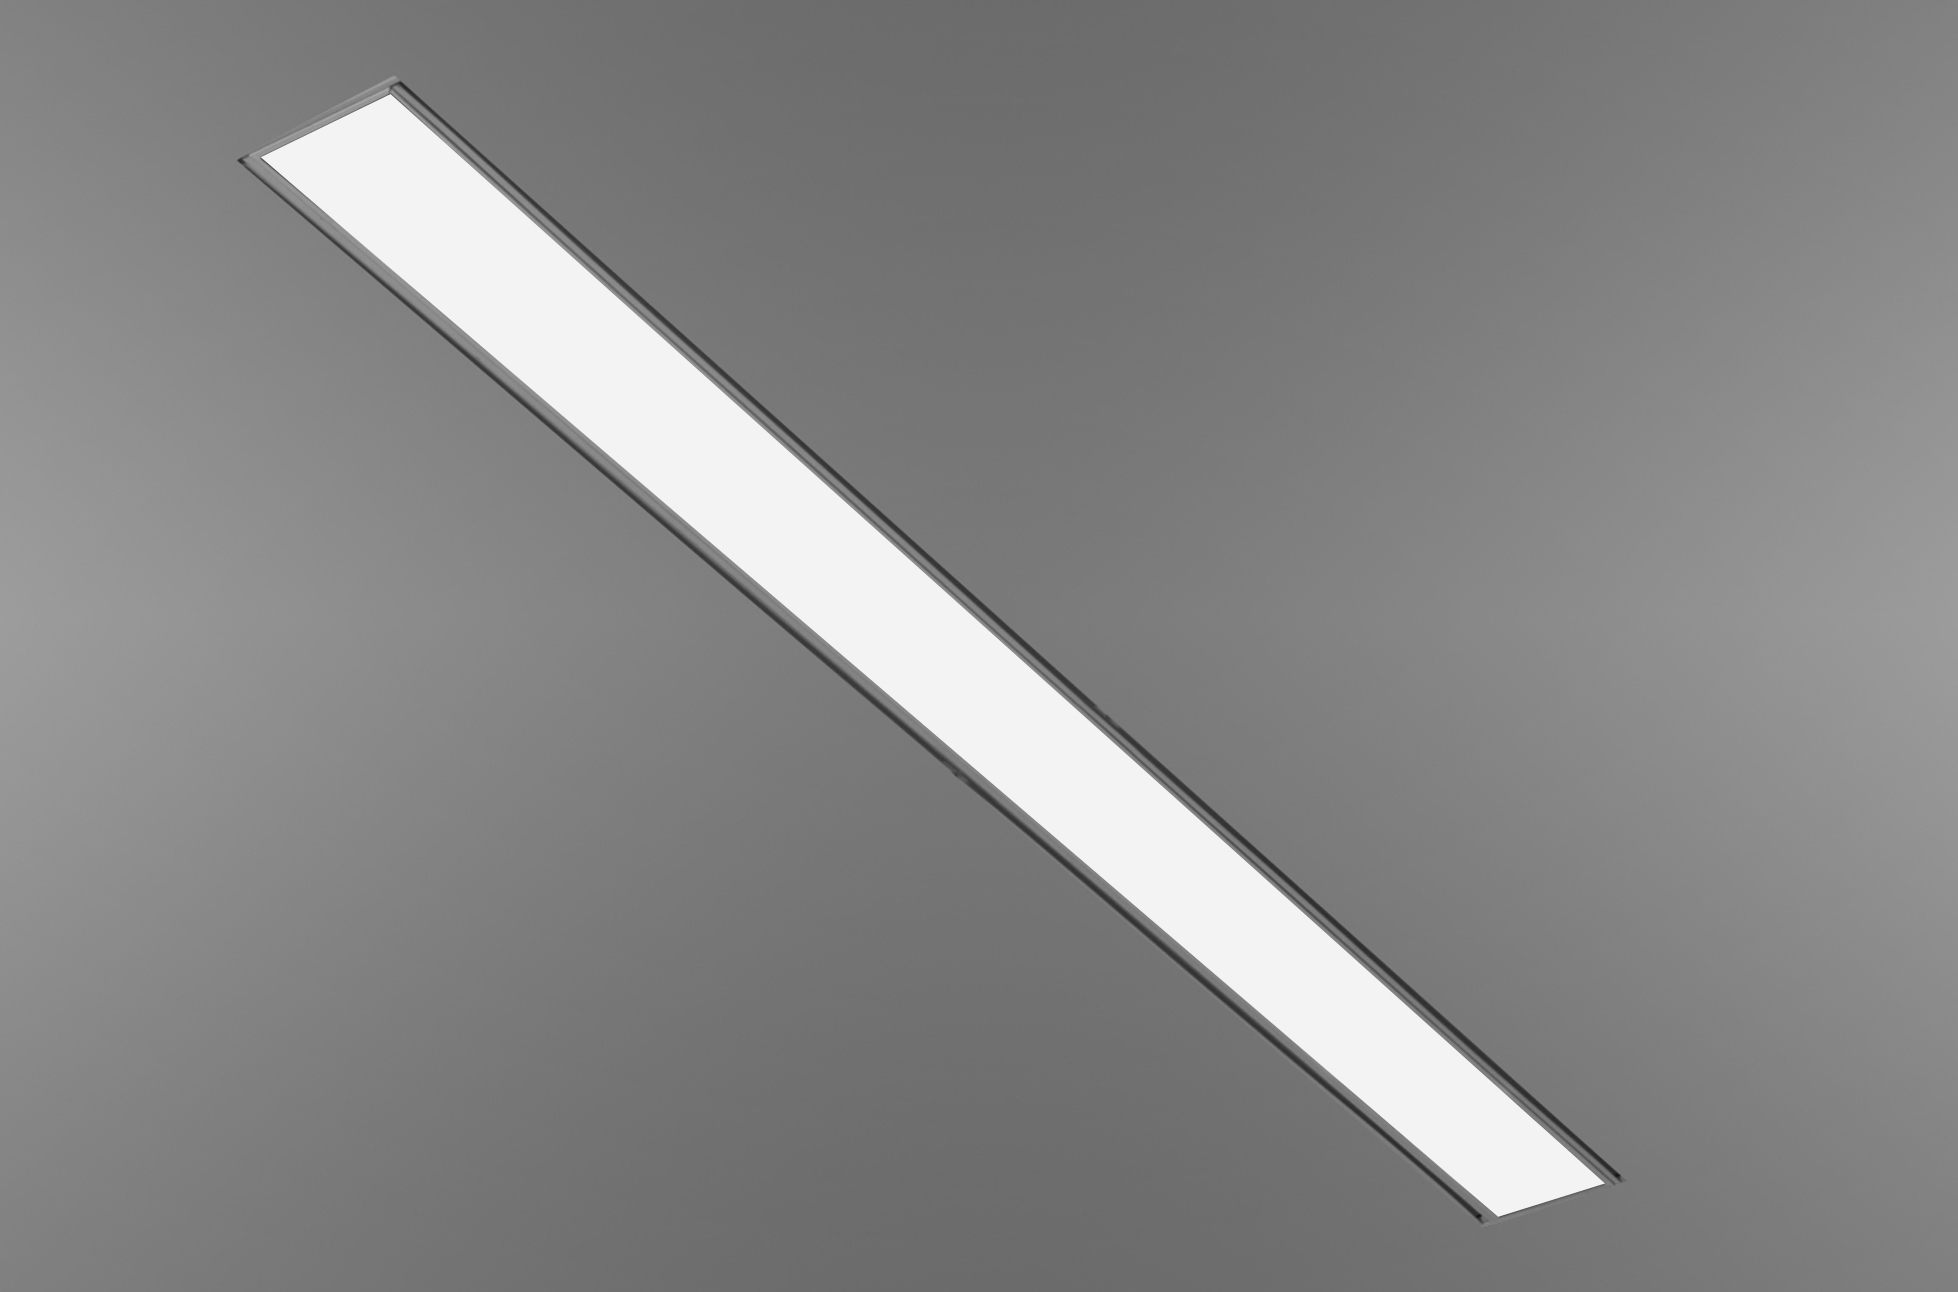 Recessed Linear Lighting Fixtures Mark Architectural